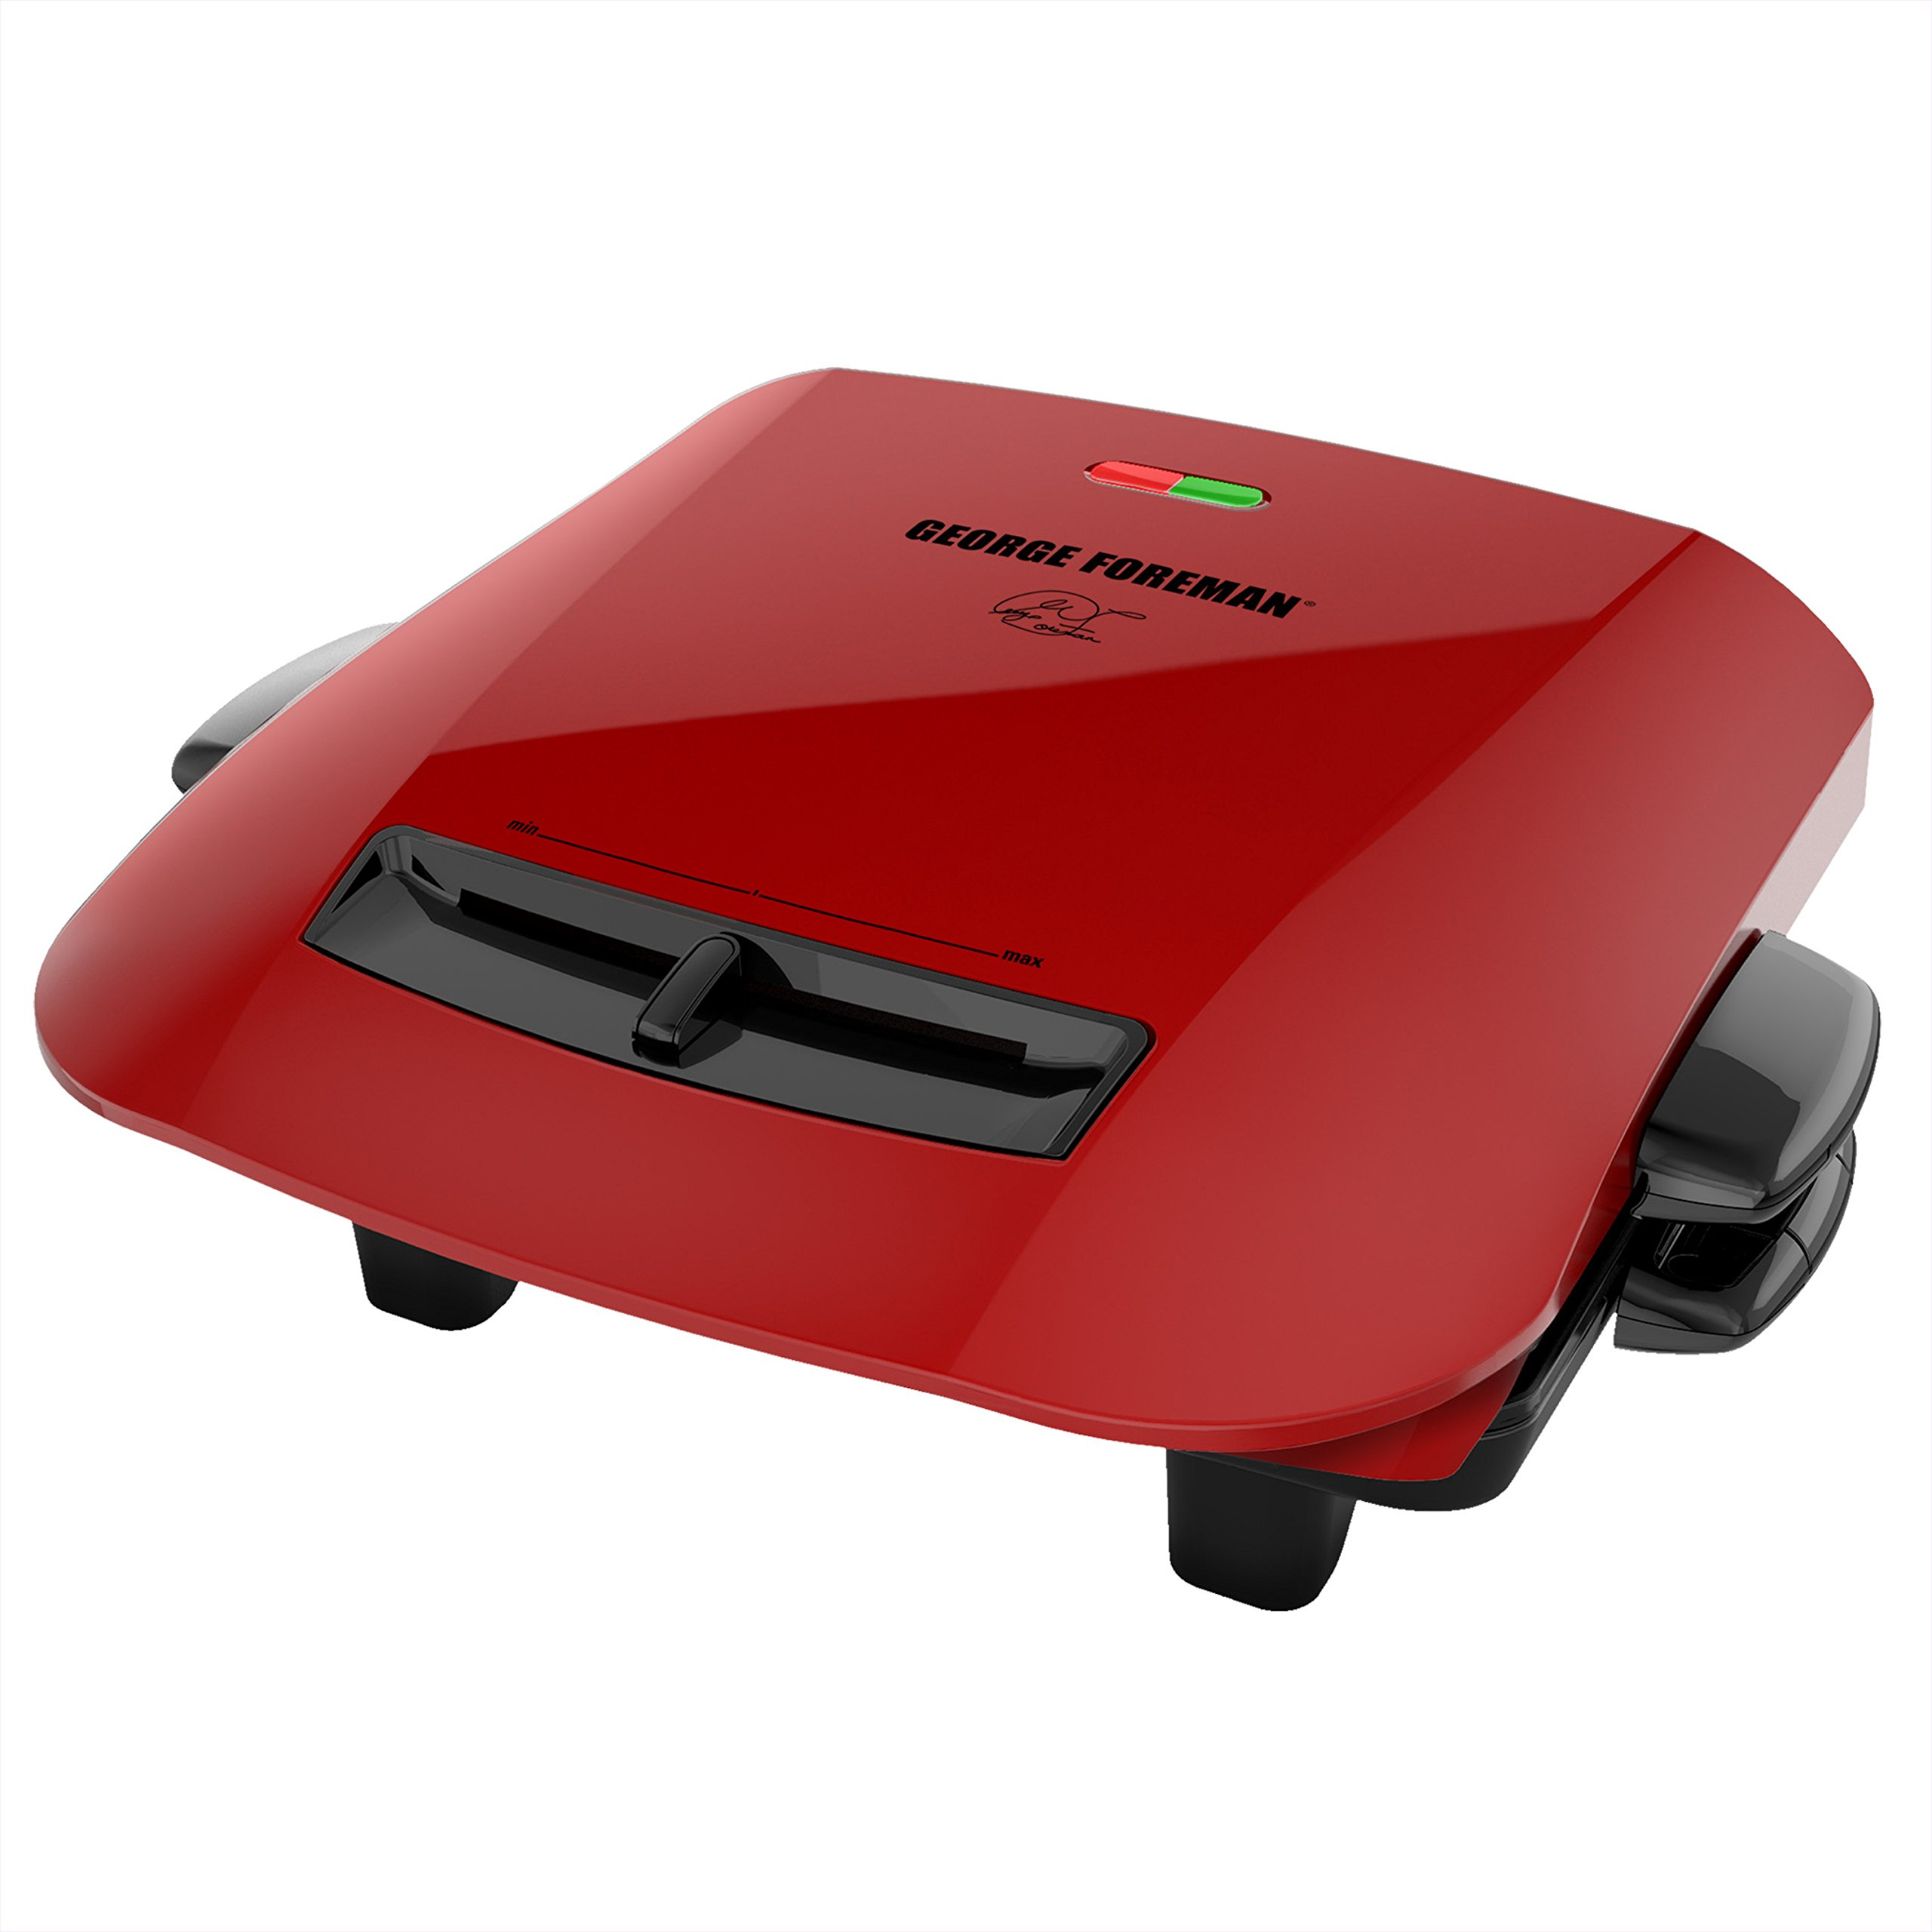 George Foreman 5-Serving Removable Plate Grill and Panini Press, Red, GRP2841R